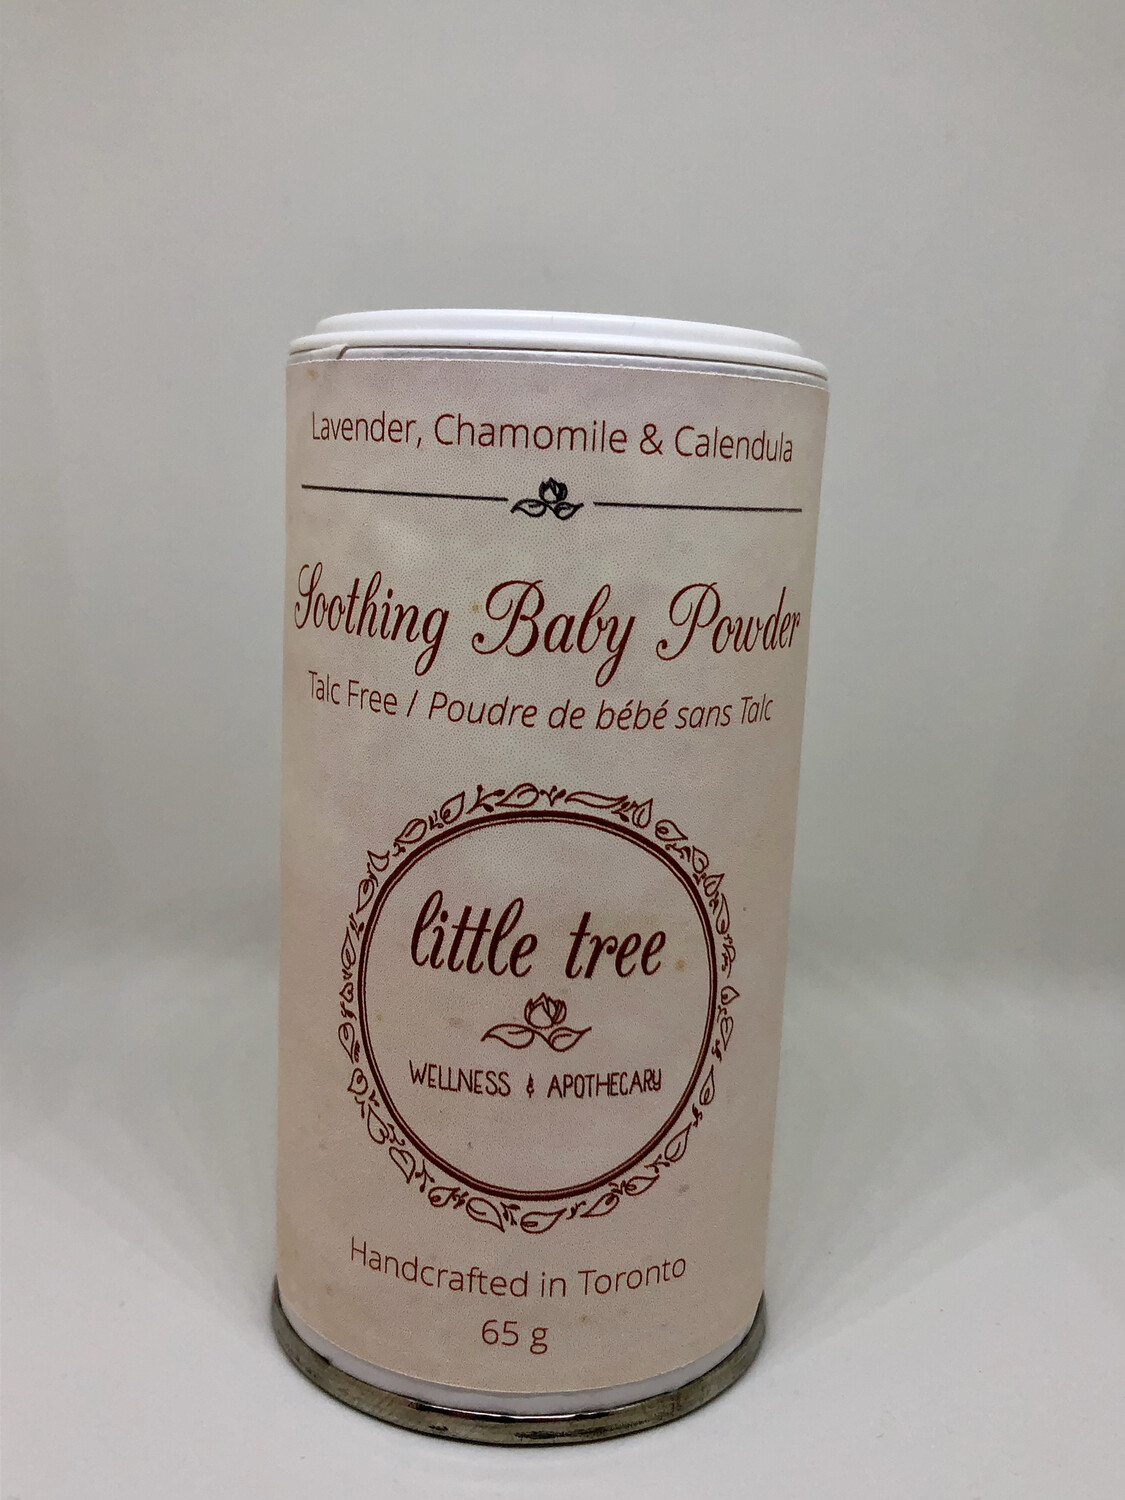 Soothing Baby Powder (65 g) Talc Free